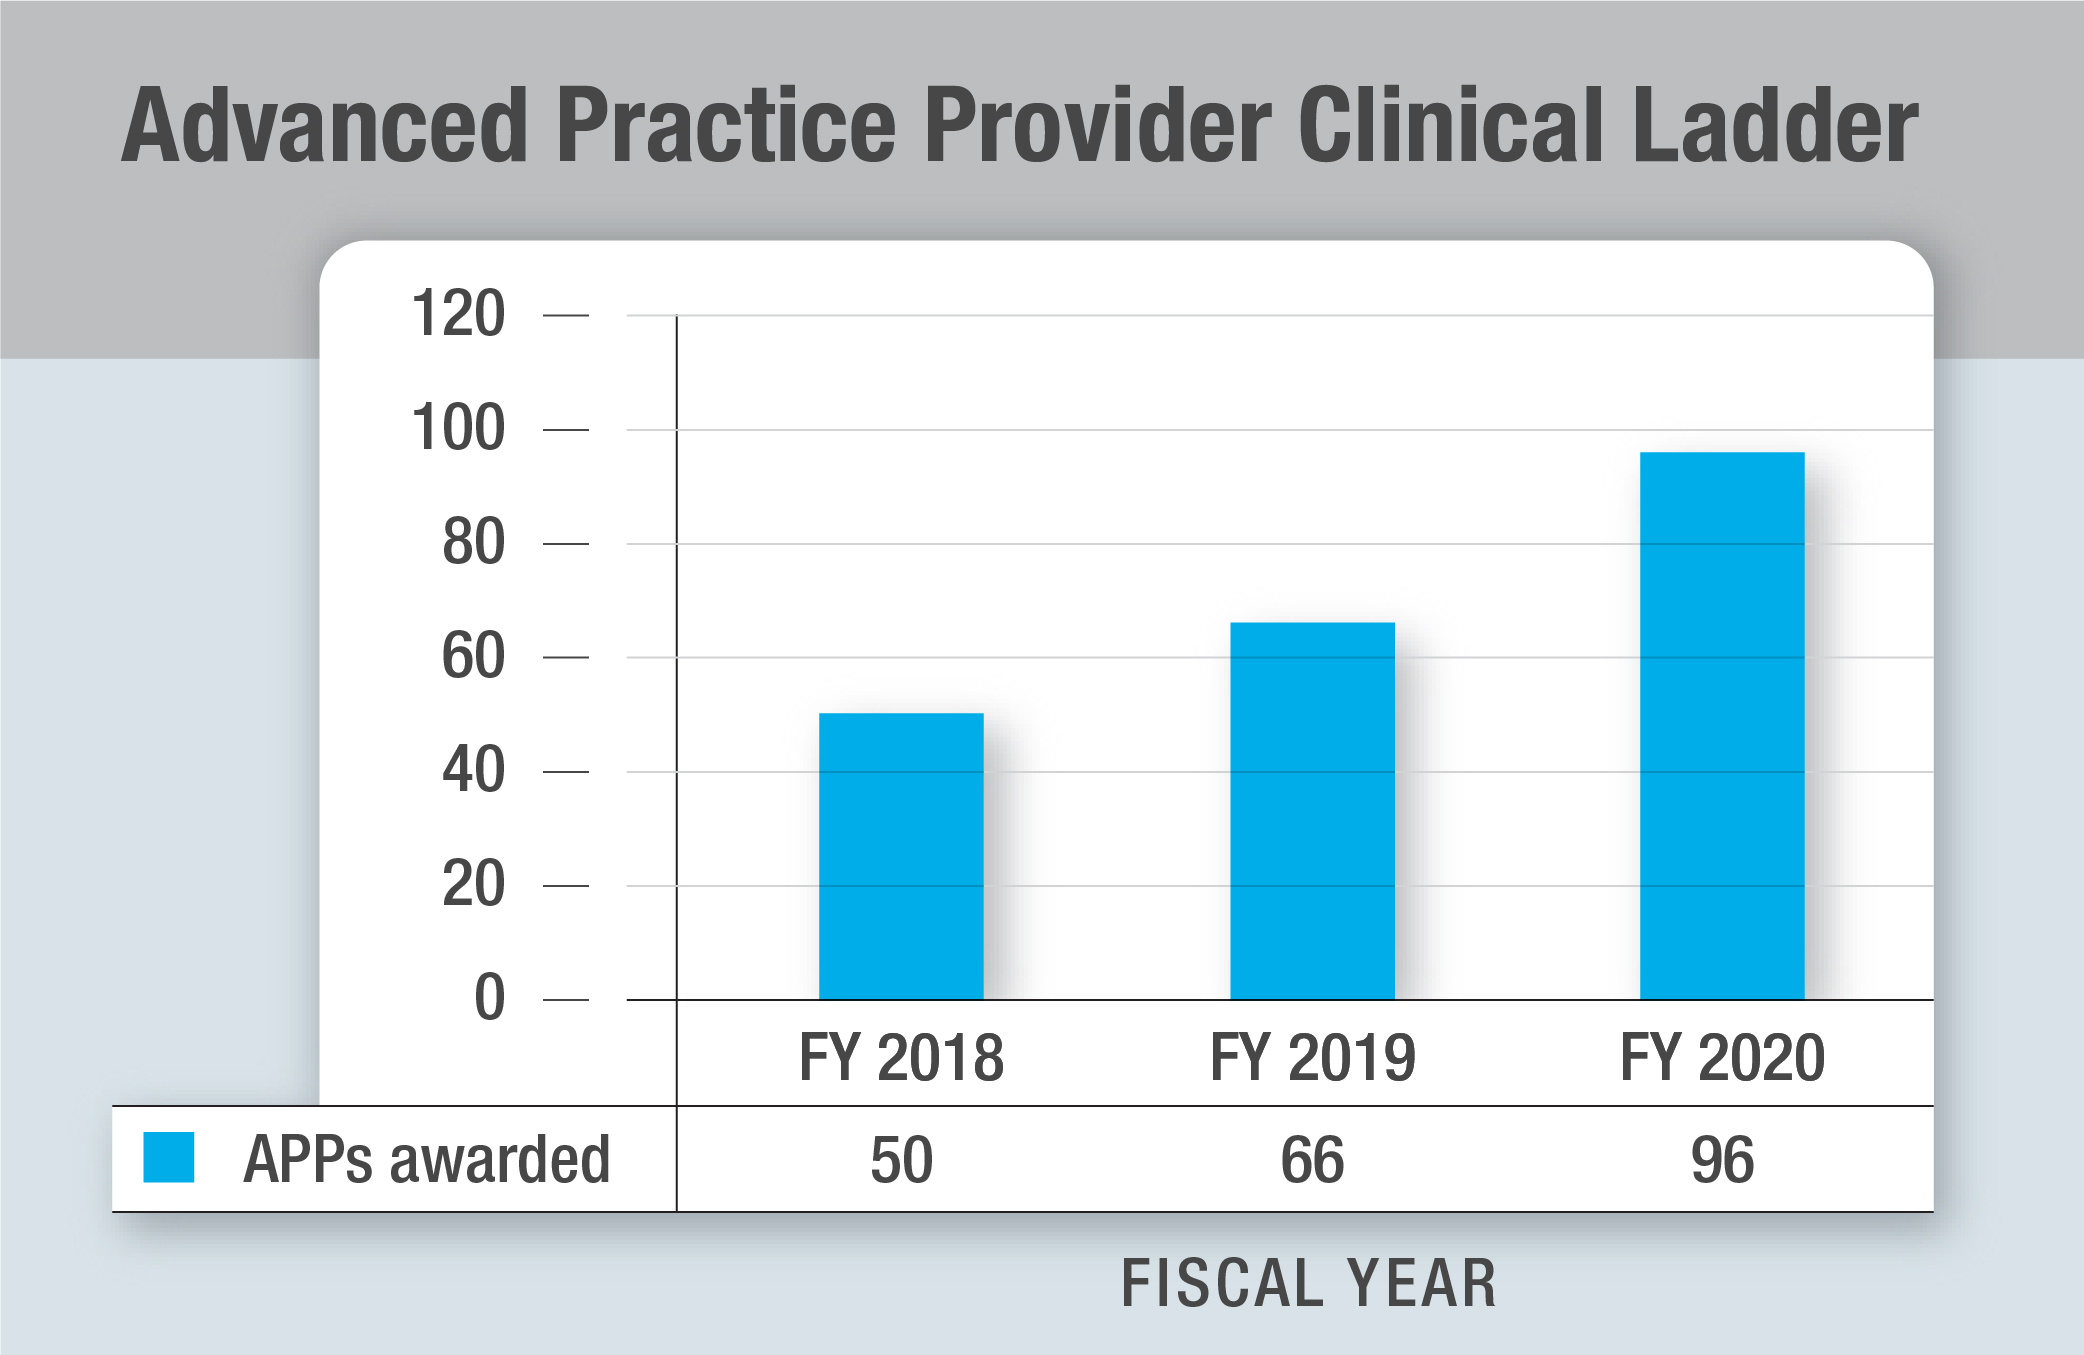 Advanced Practice Provider Clinical Ladder Graphic